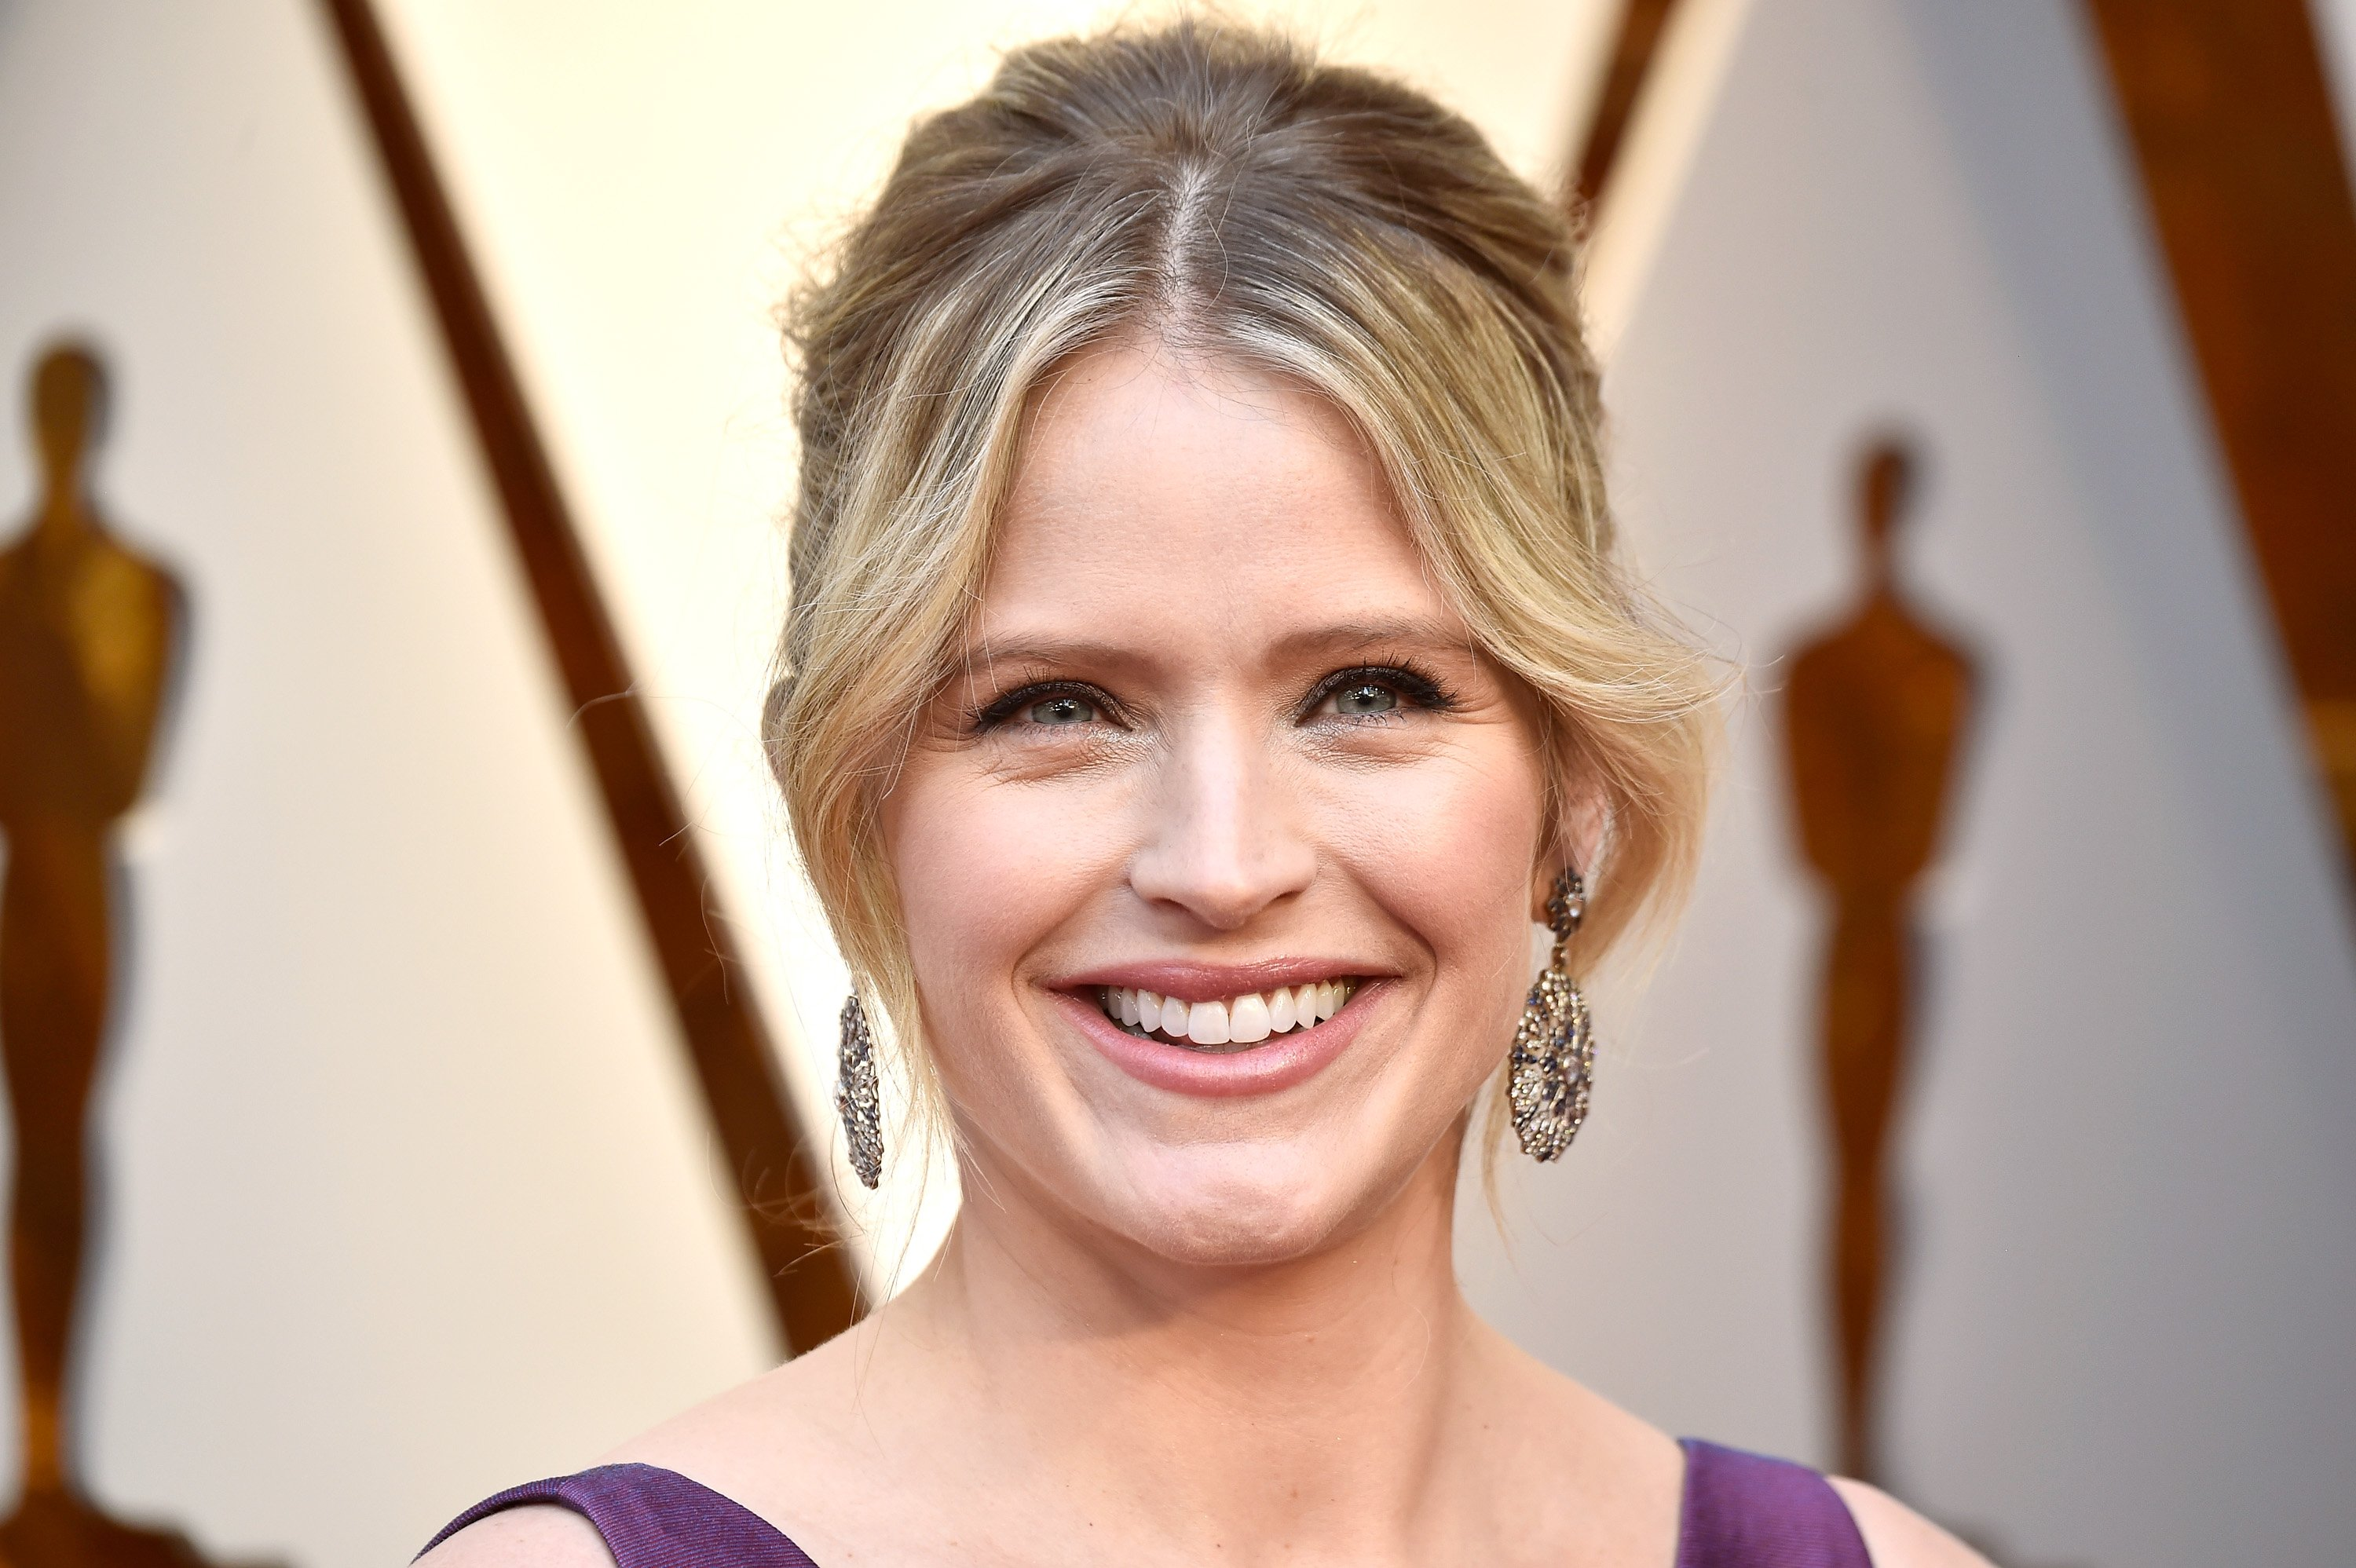 Sara Haines attends the 90th Annual Academy Awards in Hollywood, California on March 4, 2018   Photo: Getty Images